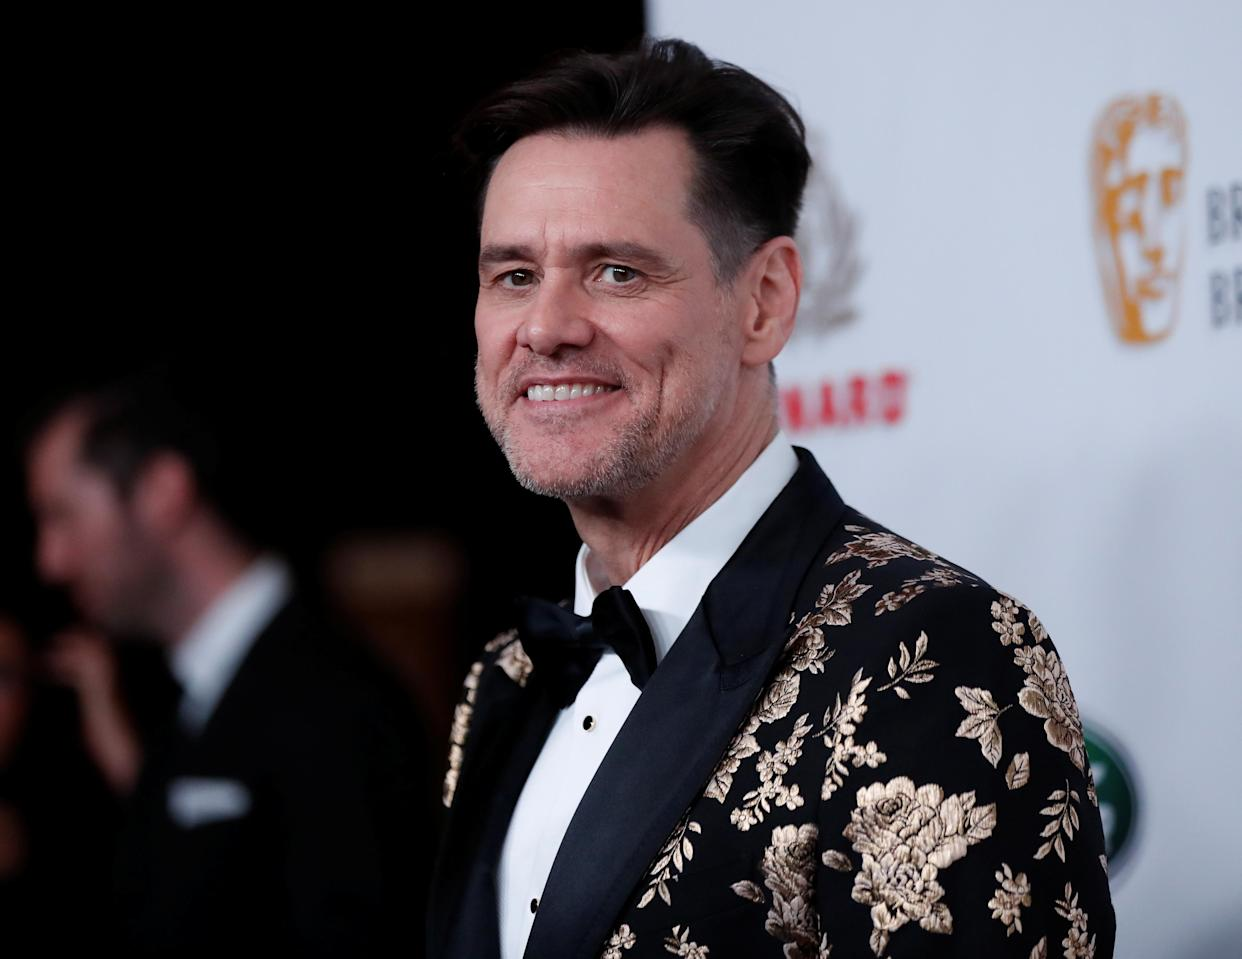 Jim Carrey is calling out Donald Trump in his latest political painting. (Photo: REUTERS/Mario Anzuoni)